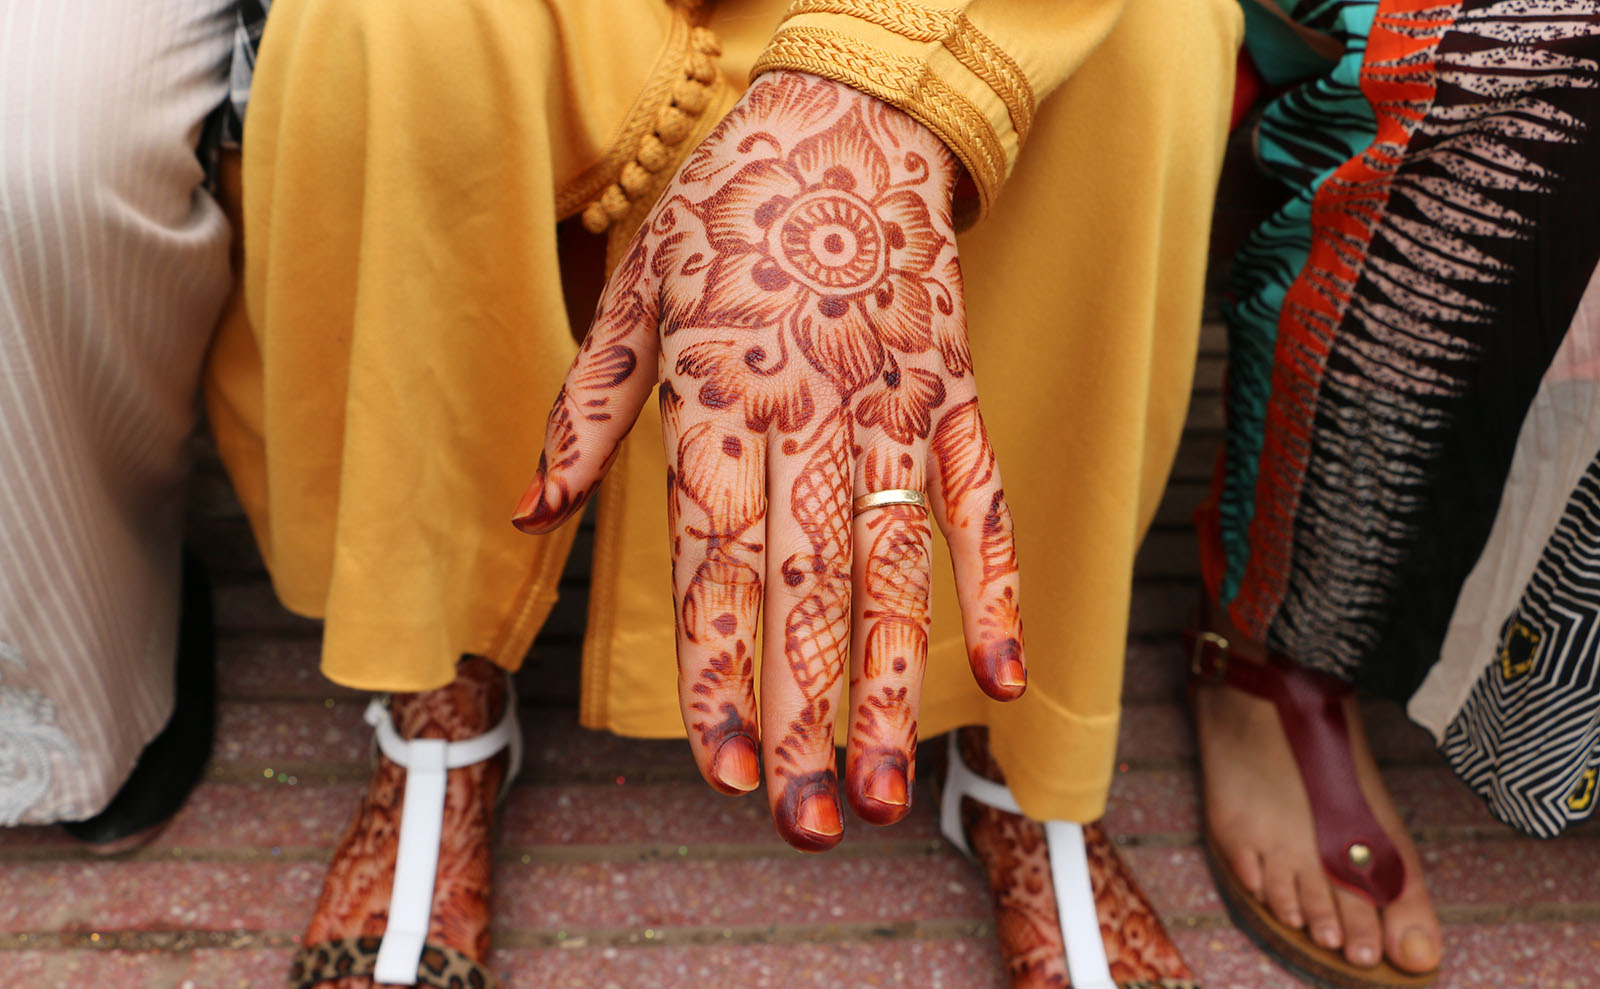 a woman's hands displaying red henna tattoos